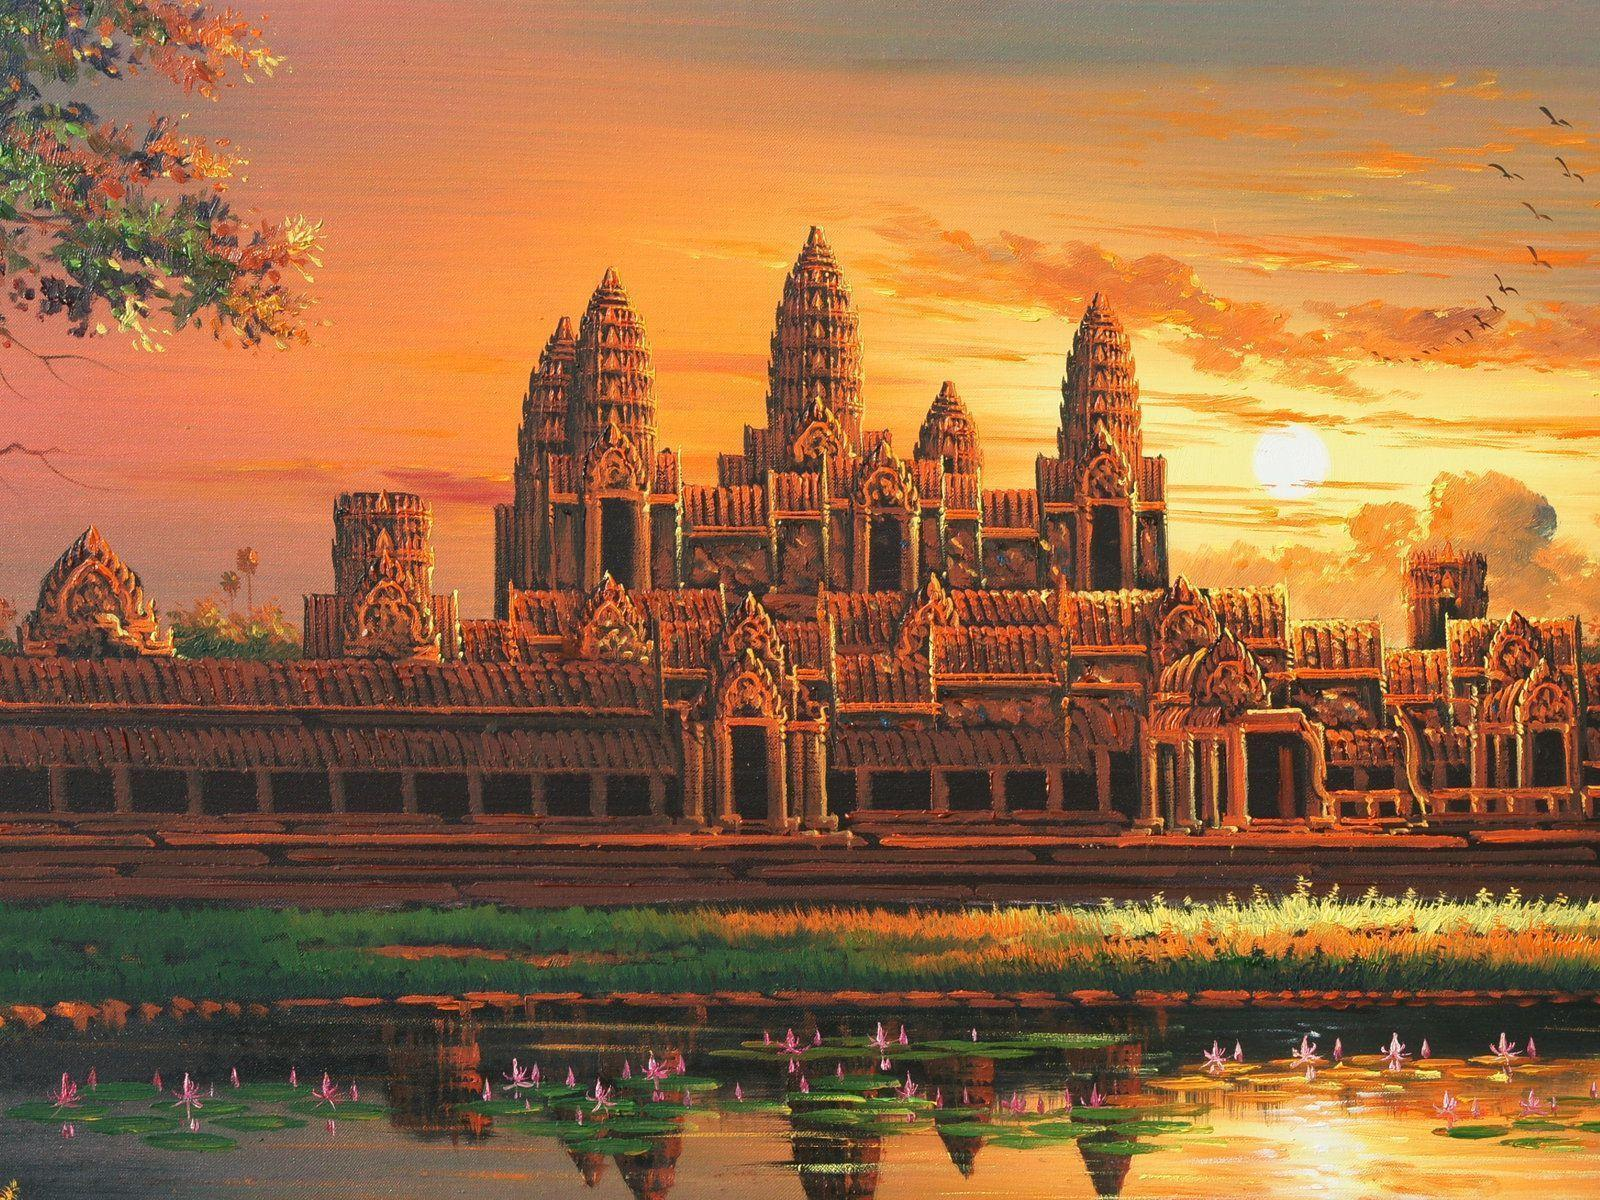 angkor wat wallpapers wallpaper cave. Black Bedroom Furniture Sets. Home Design Ideas